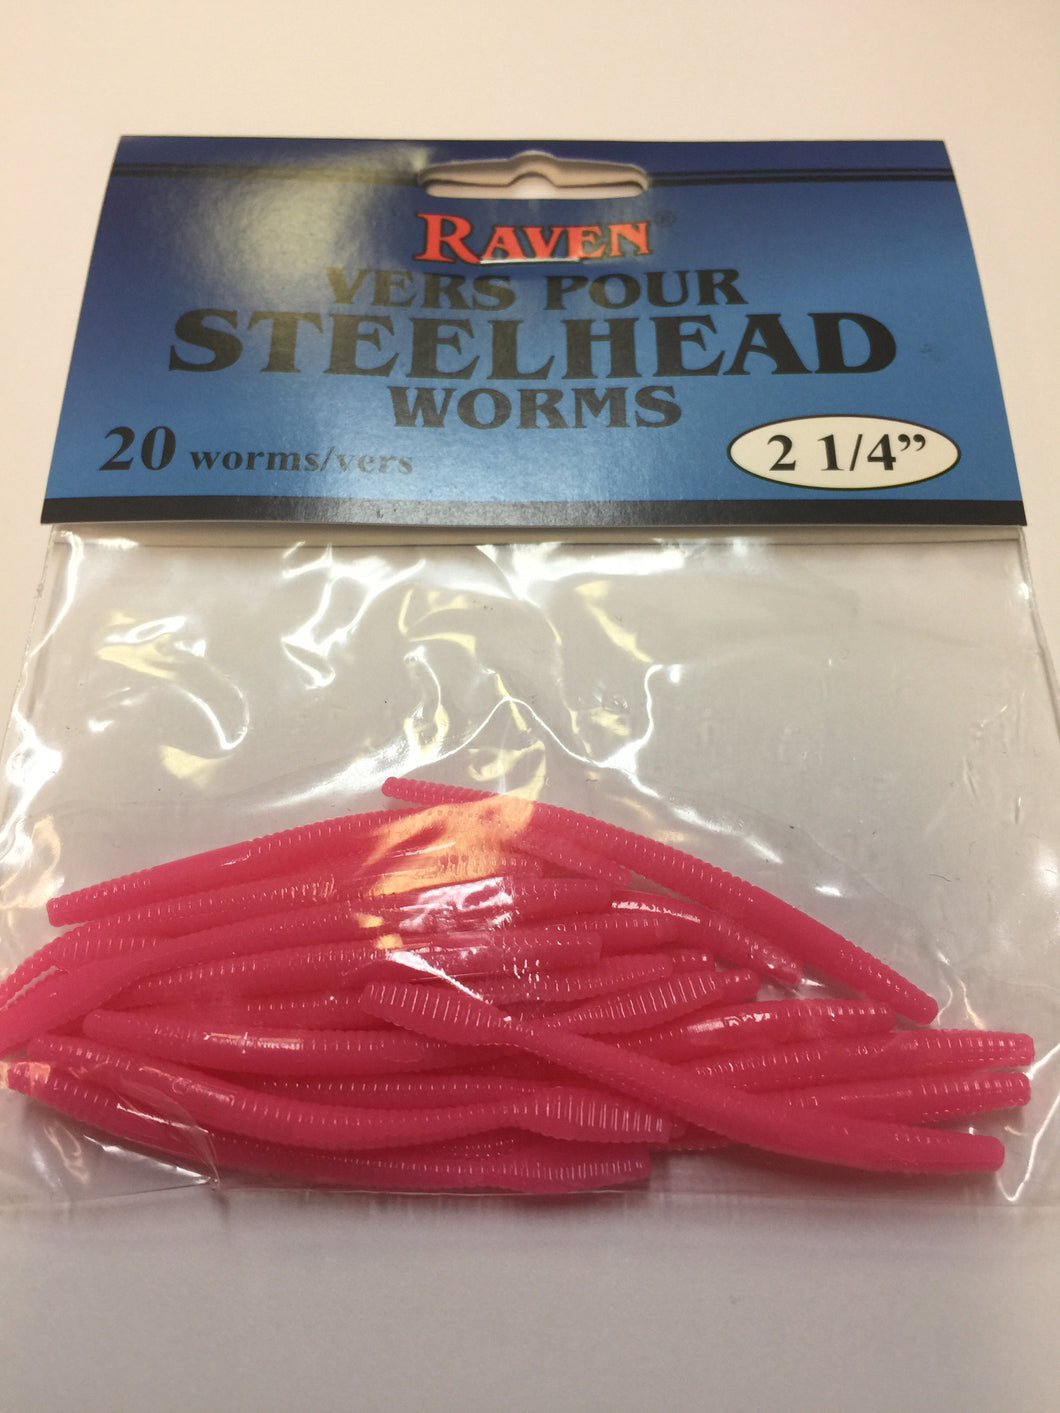 Raven steelhead worms